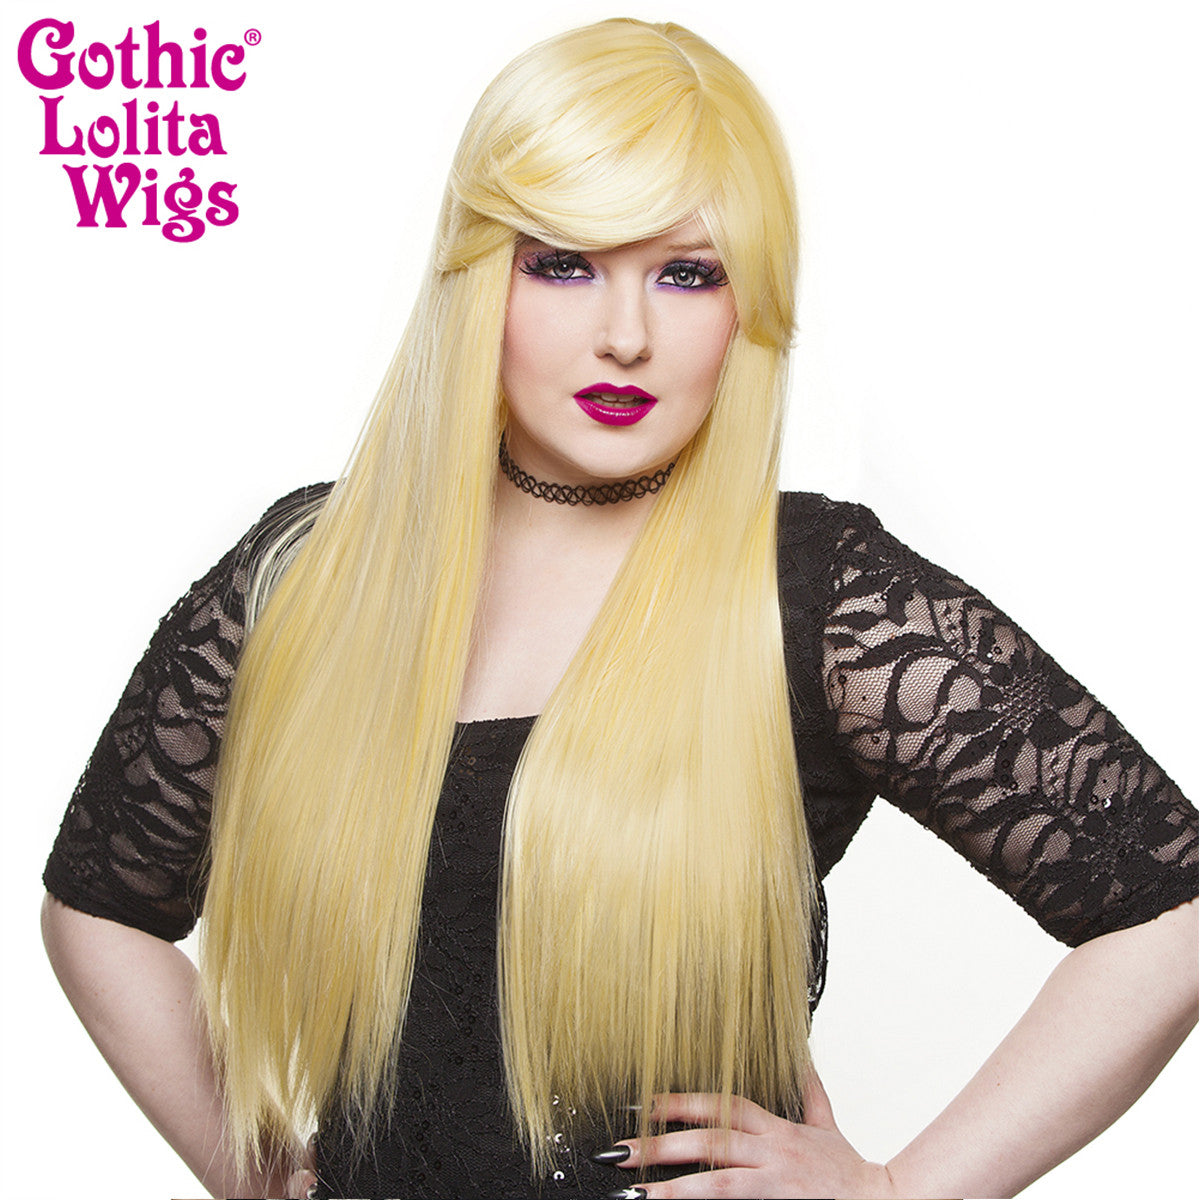 Gothic Lolita Wigs® <br> Bella™ Collection - Light Blonde Mix - 00682